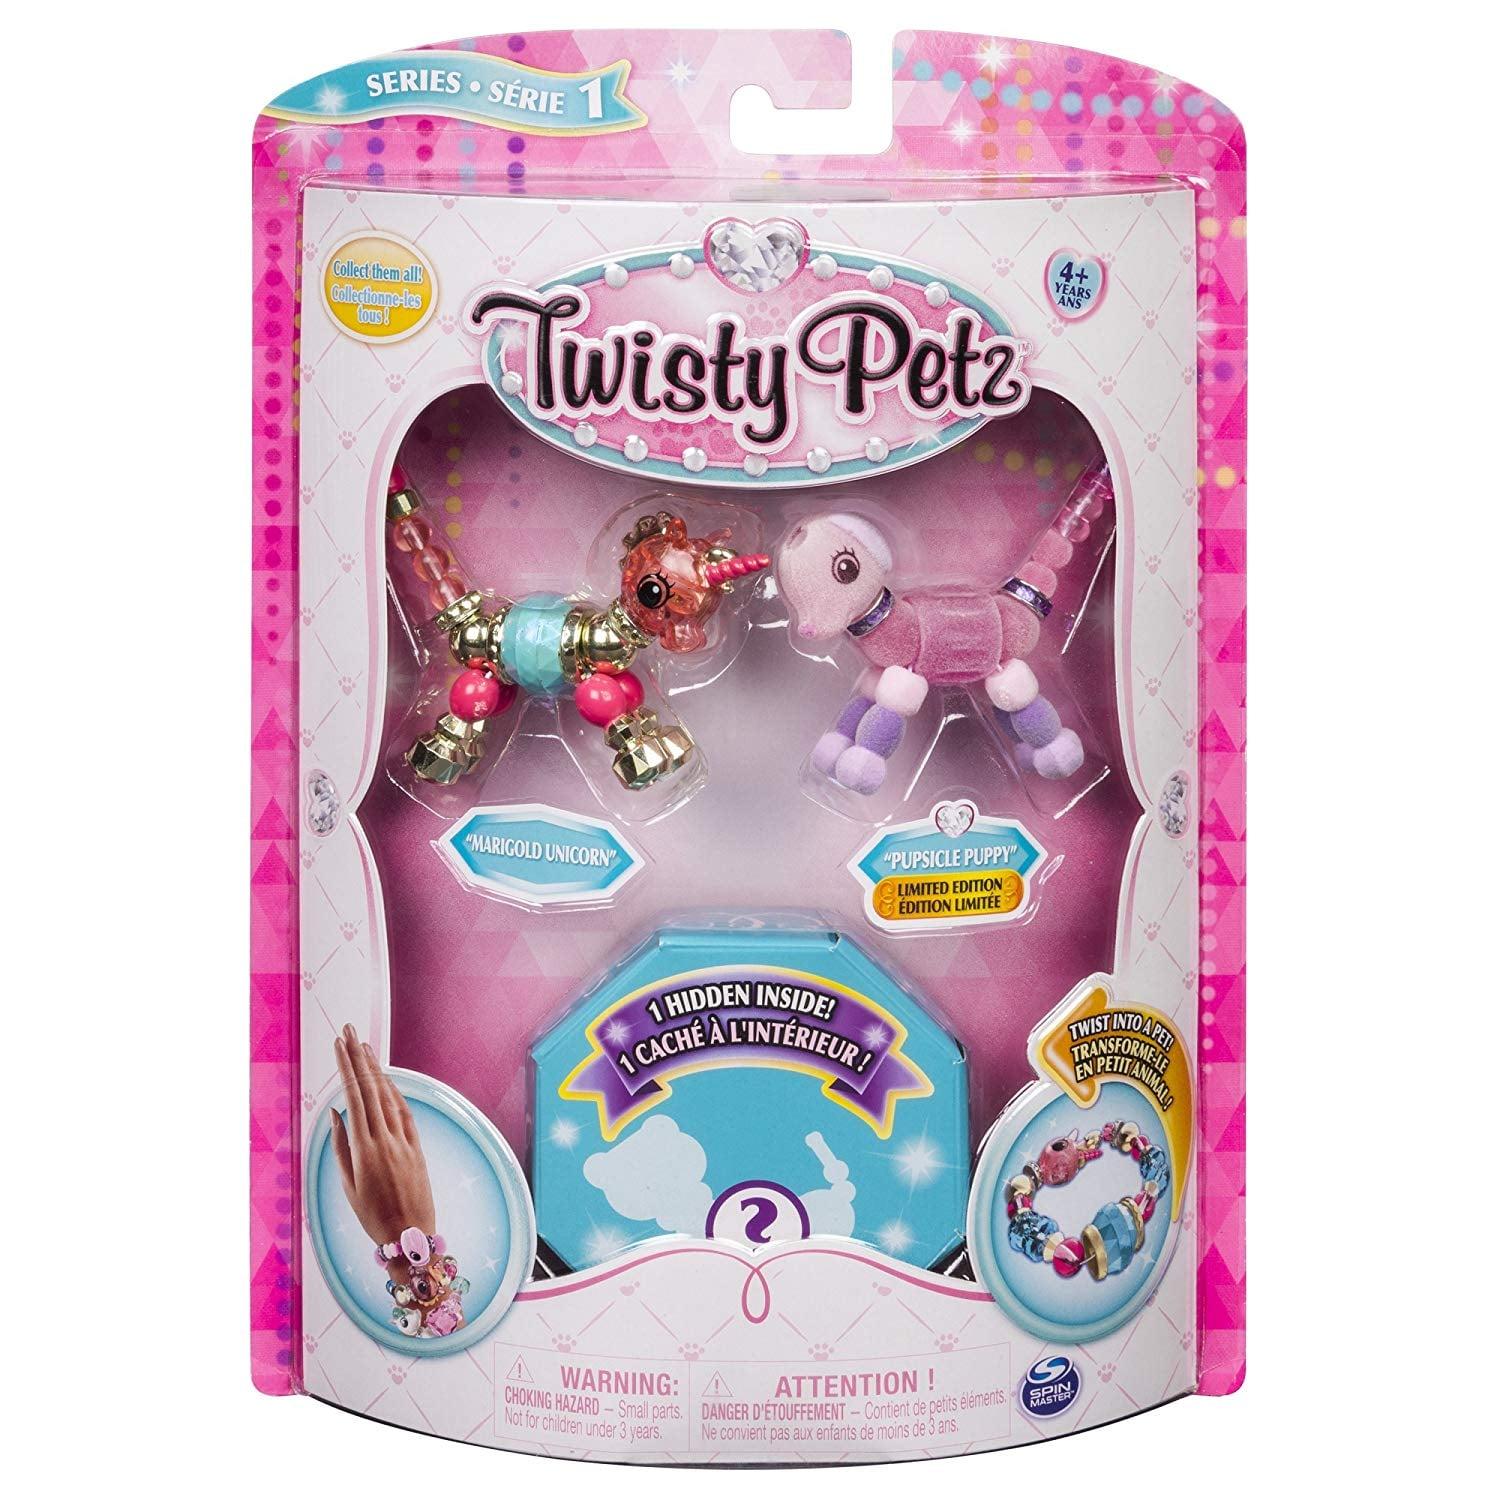 Putty Peeps// Perfect Stocking Stuffers 1 Bronze and 1 Silver//Squishy Stretchy Fun//Never Dries Out//Novelty Toys Magnetic 3 Pack Sensory Toy Set for Kids//Tested Fidget Toy for Stress /& Anxiety Relief//1 Magnetic Gold